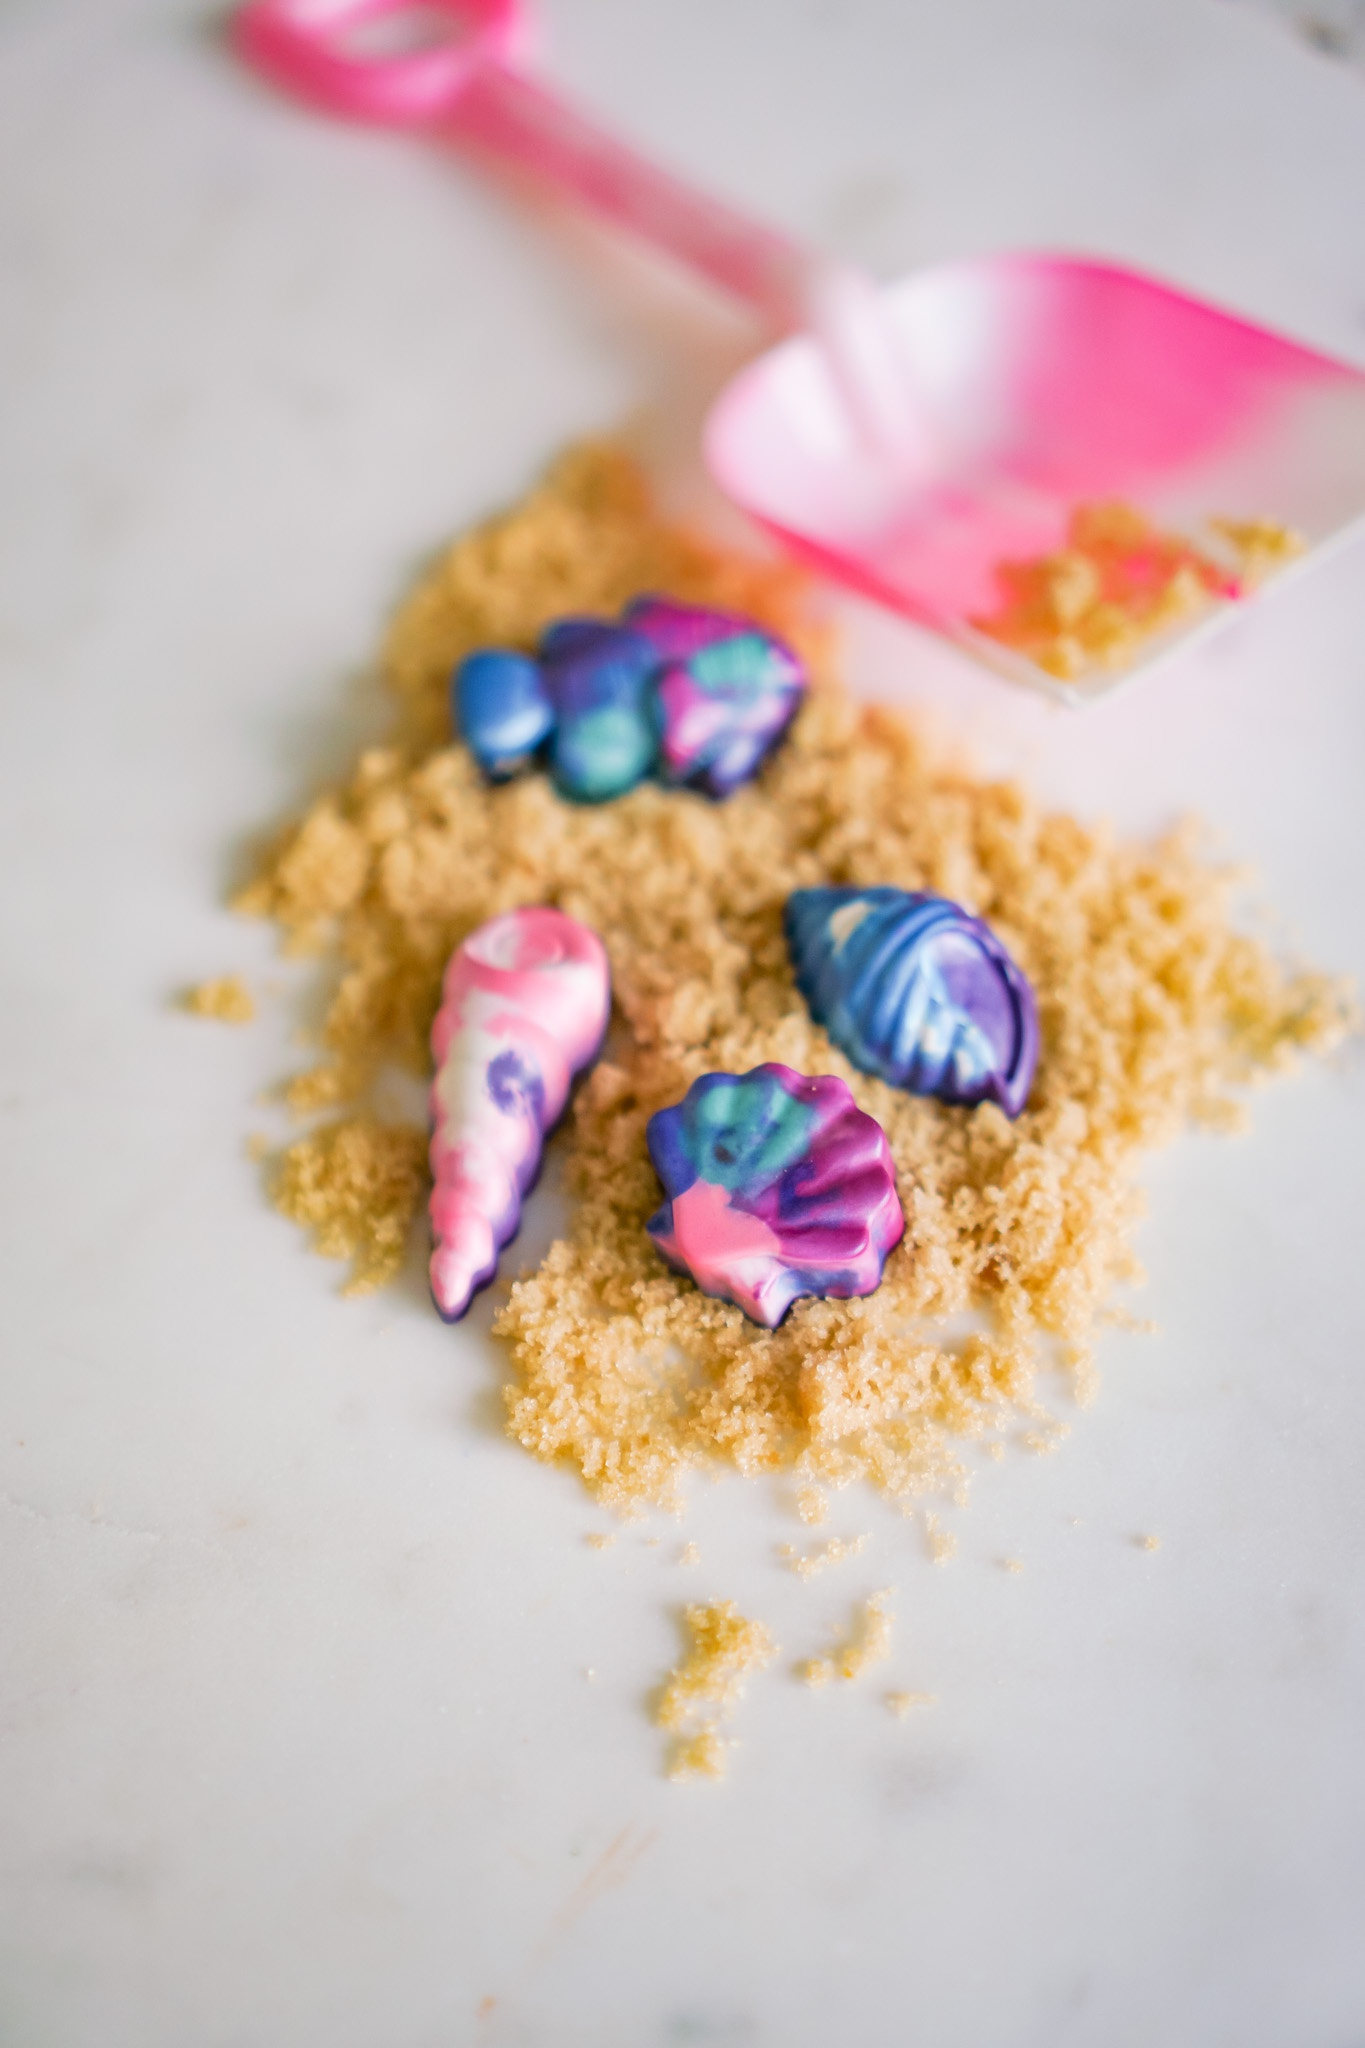 Seashell or crayons? How to melt crayons into new and improved shapes!